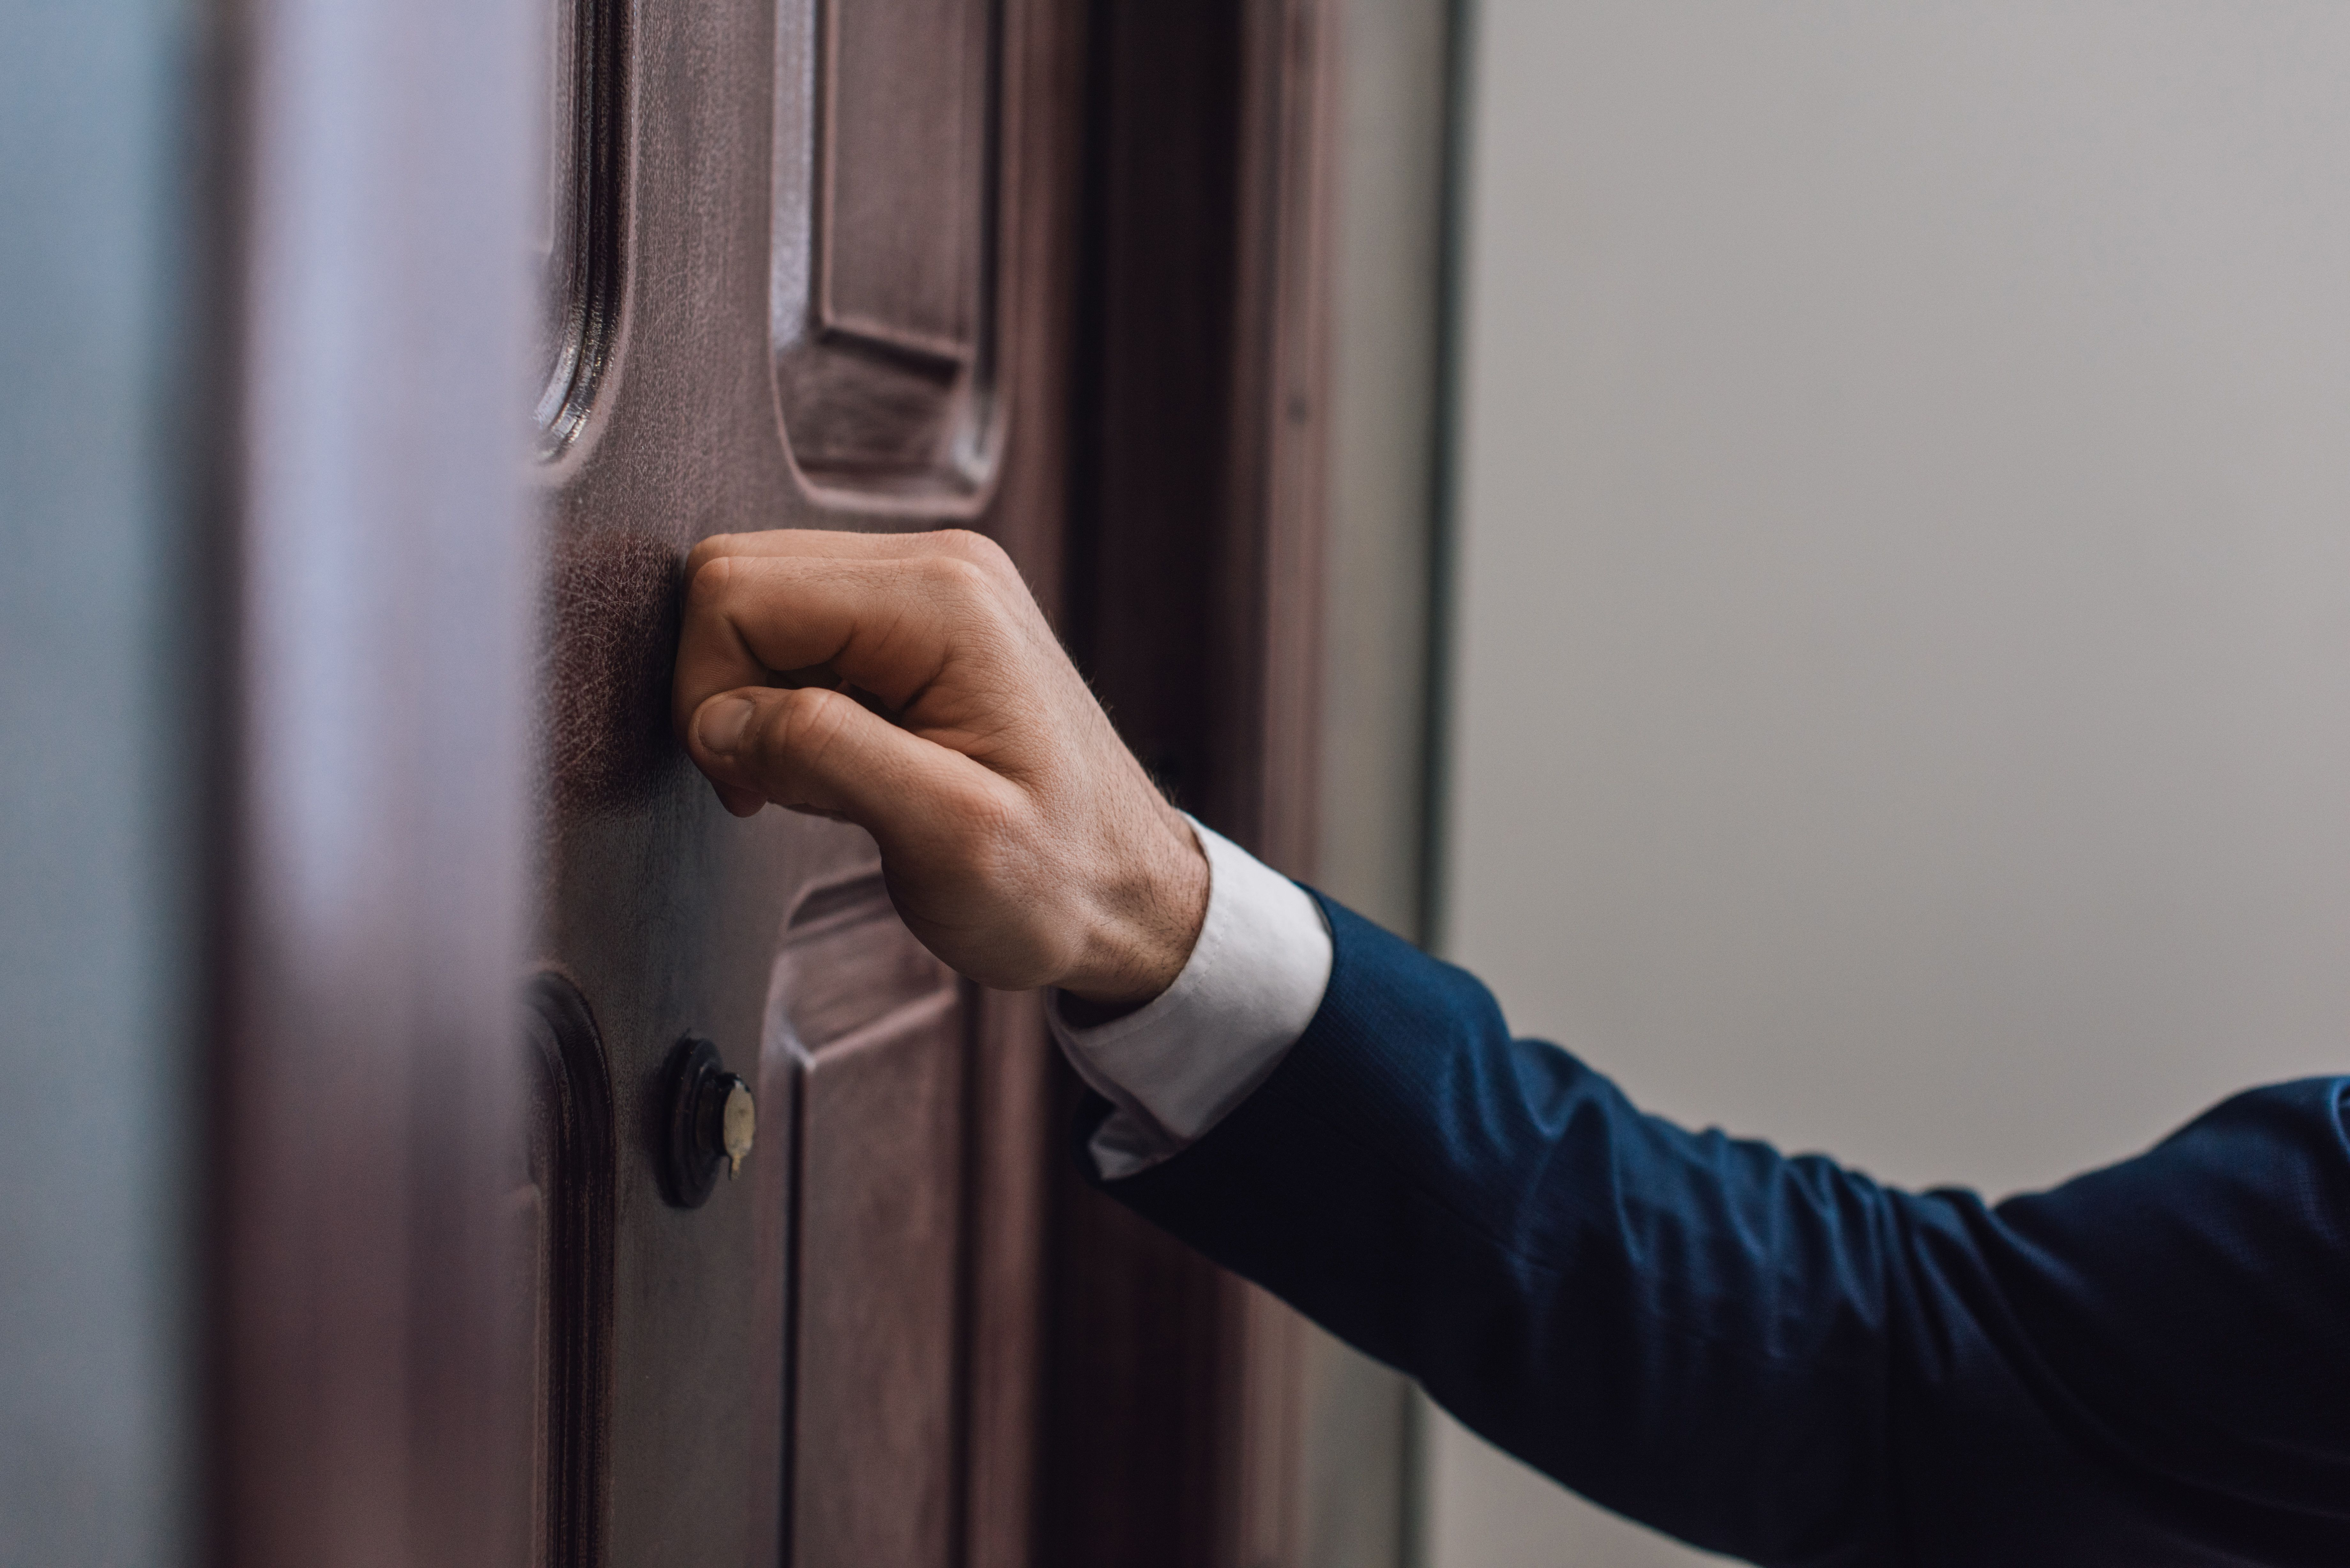 A men knocking on a door with his hand